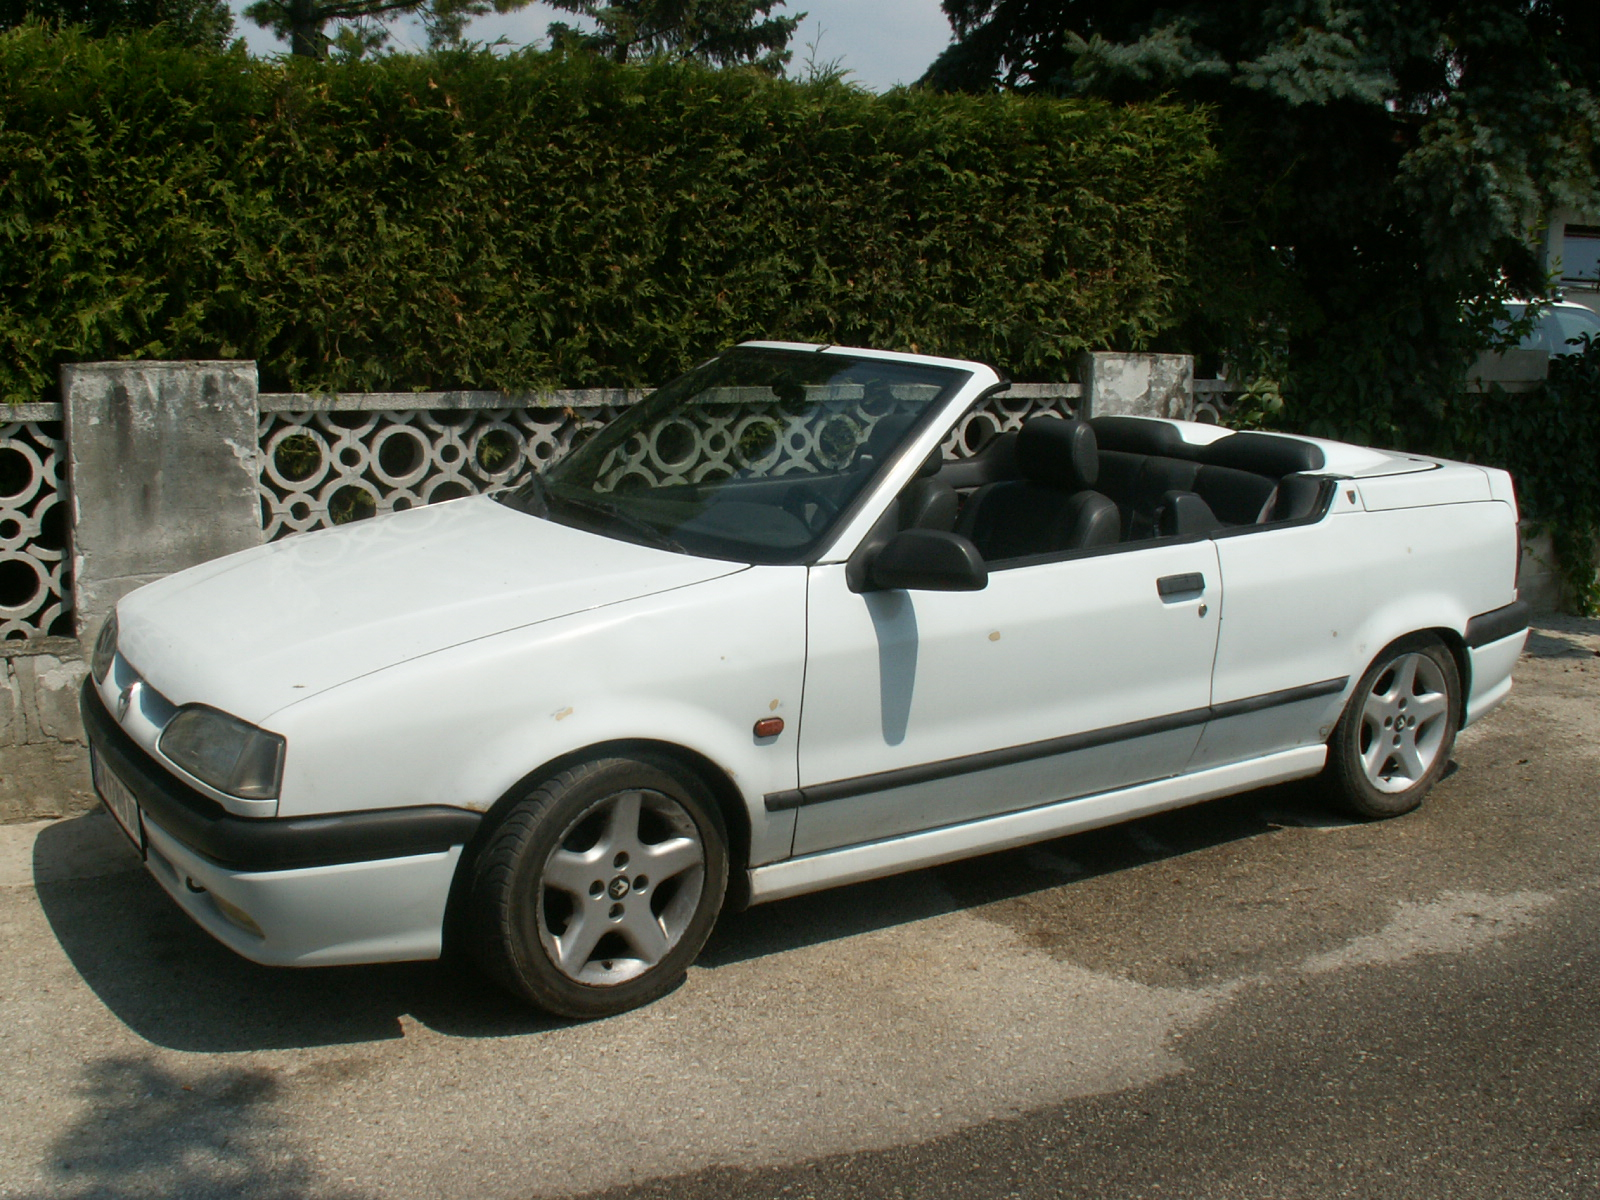 renault 19 cabriolet-pic. 2